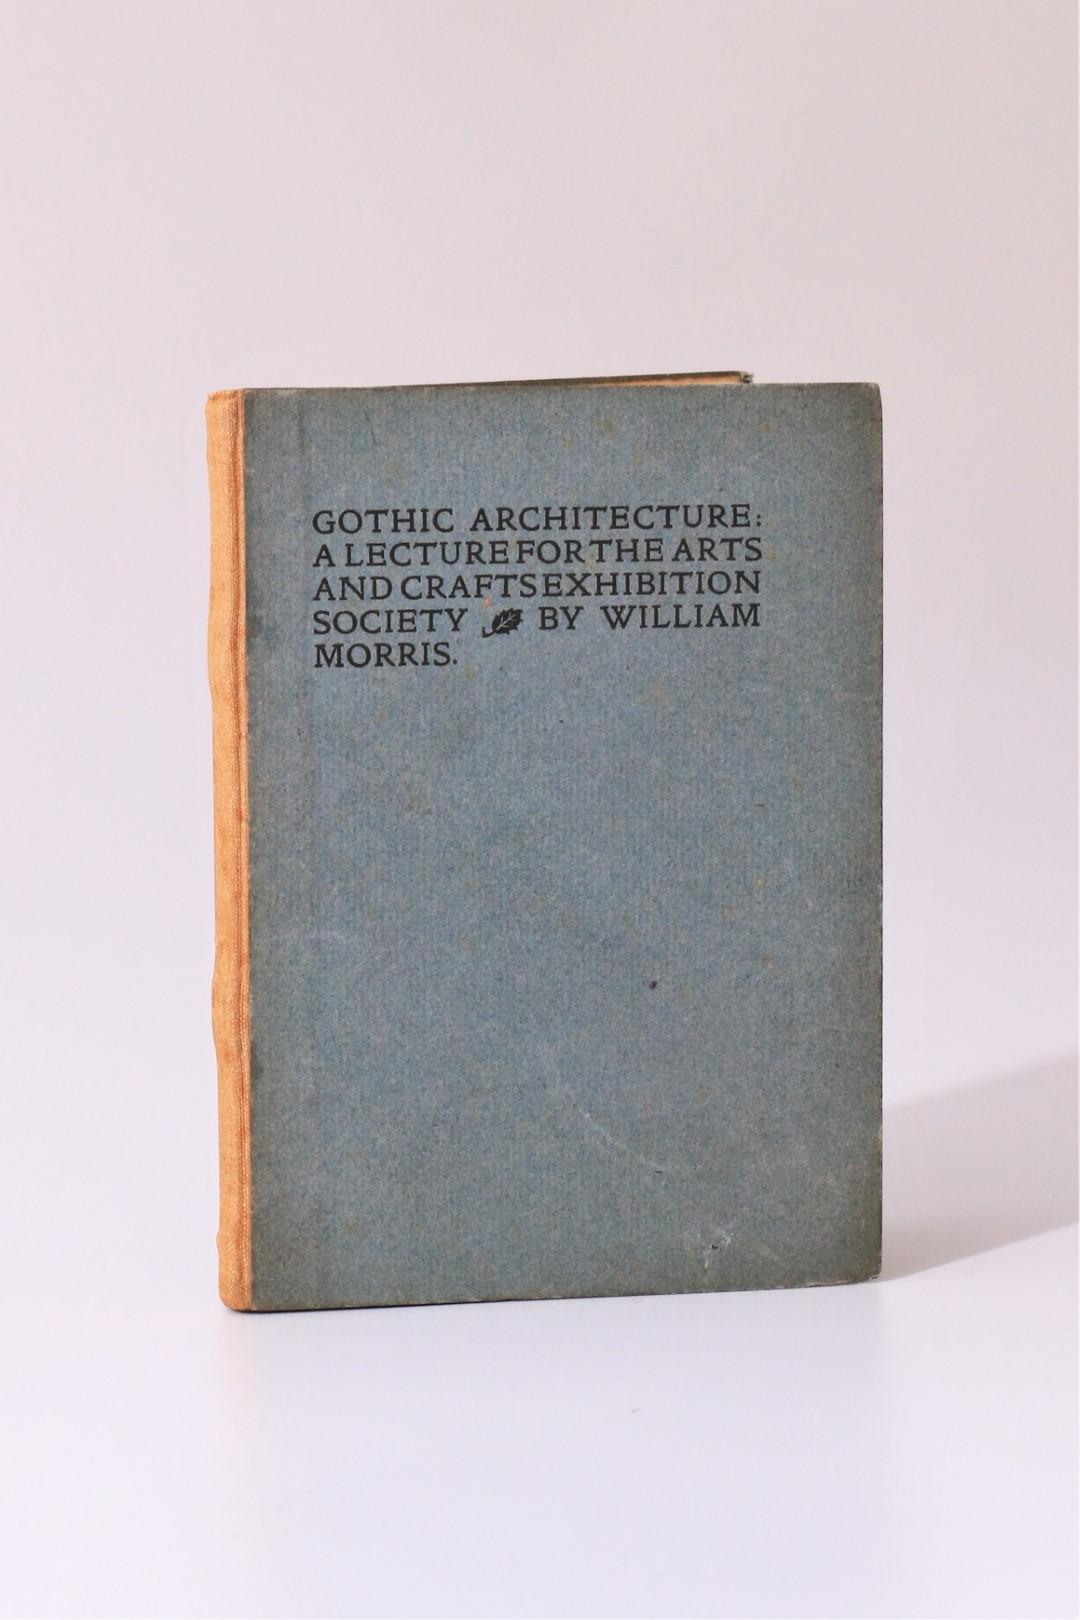 William Morris - Gothic Architecture: A Lecture for the Arts and Crafts Exhibition Society - Kelmscott Press, 1893, Limited Edition.